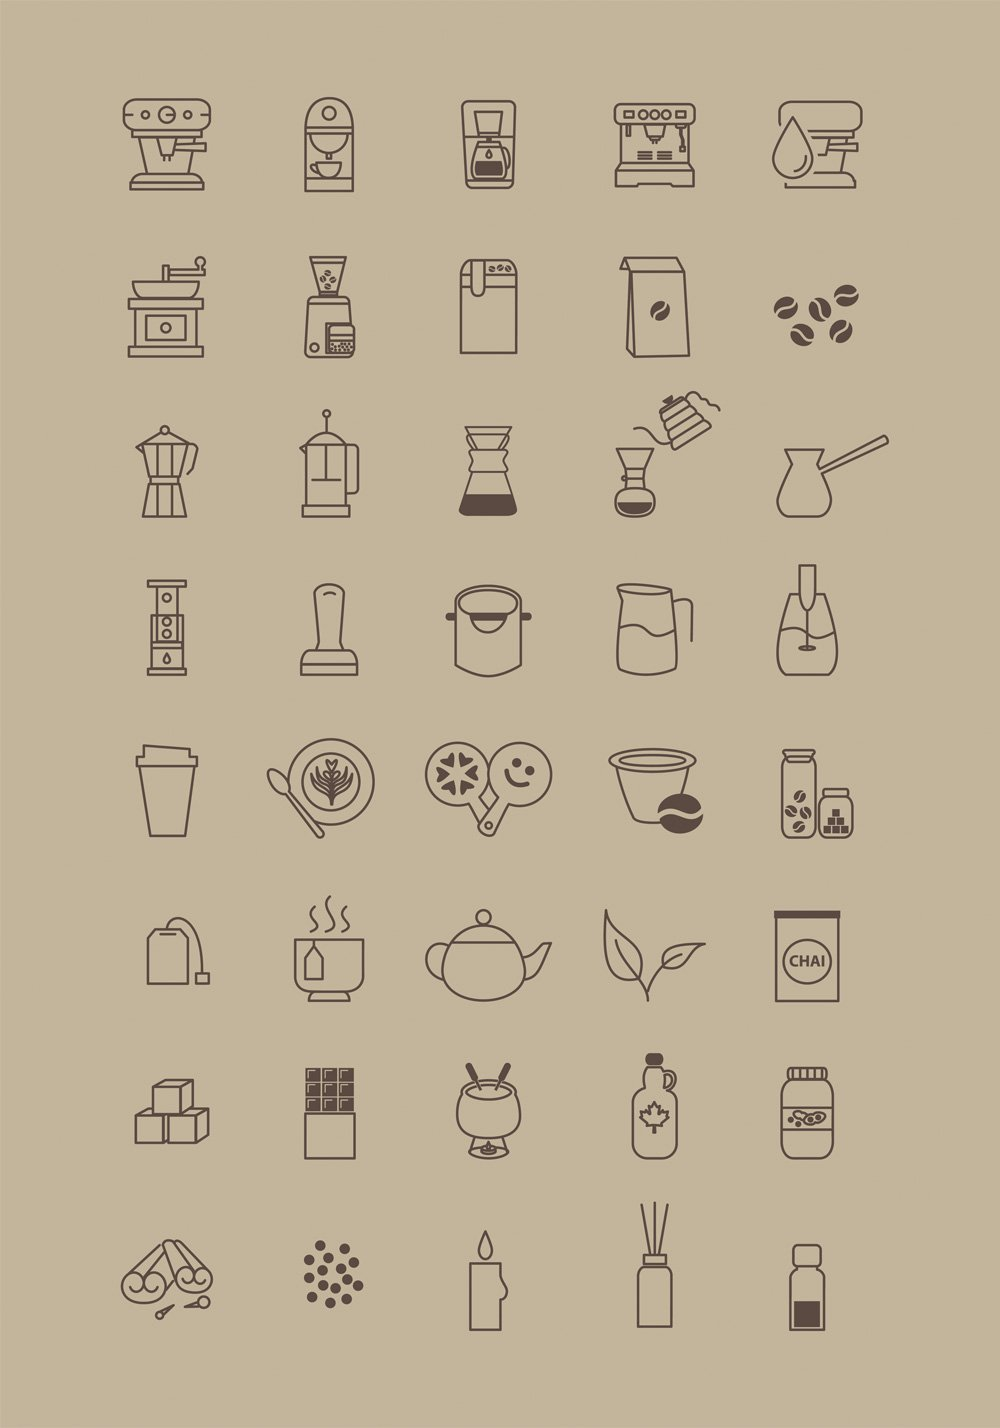 Free-Icons-for-Coffee-Store